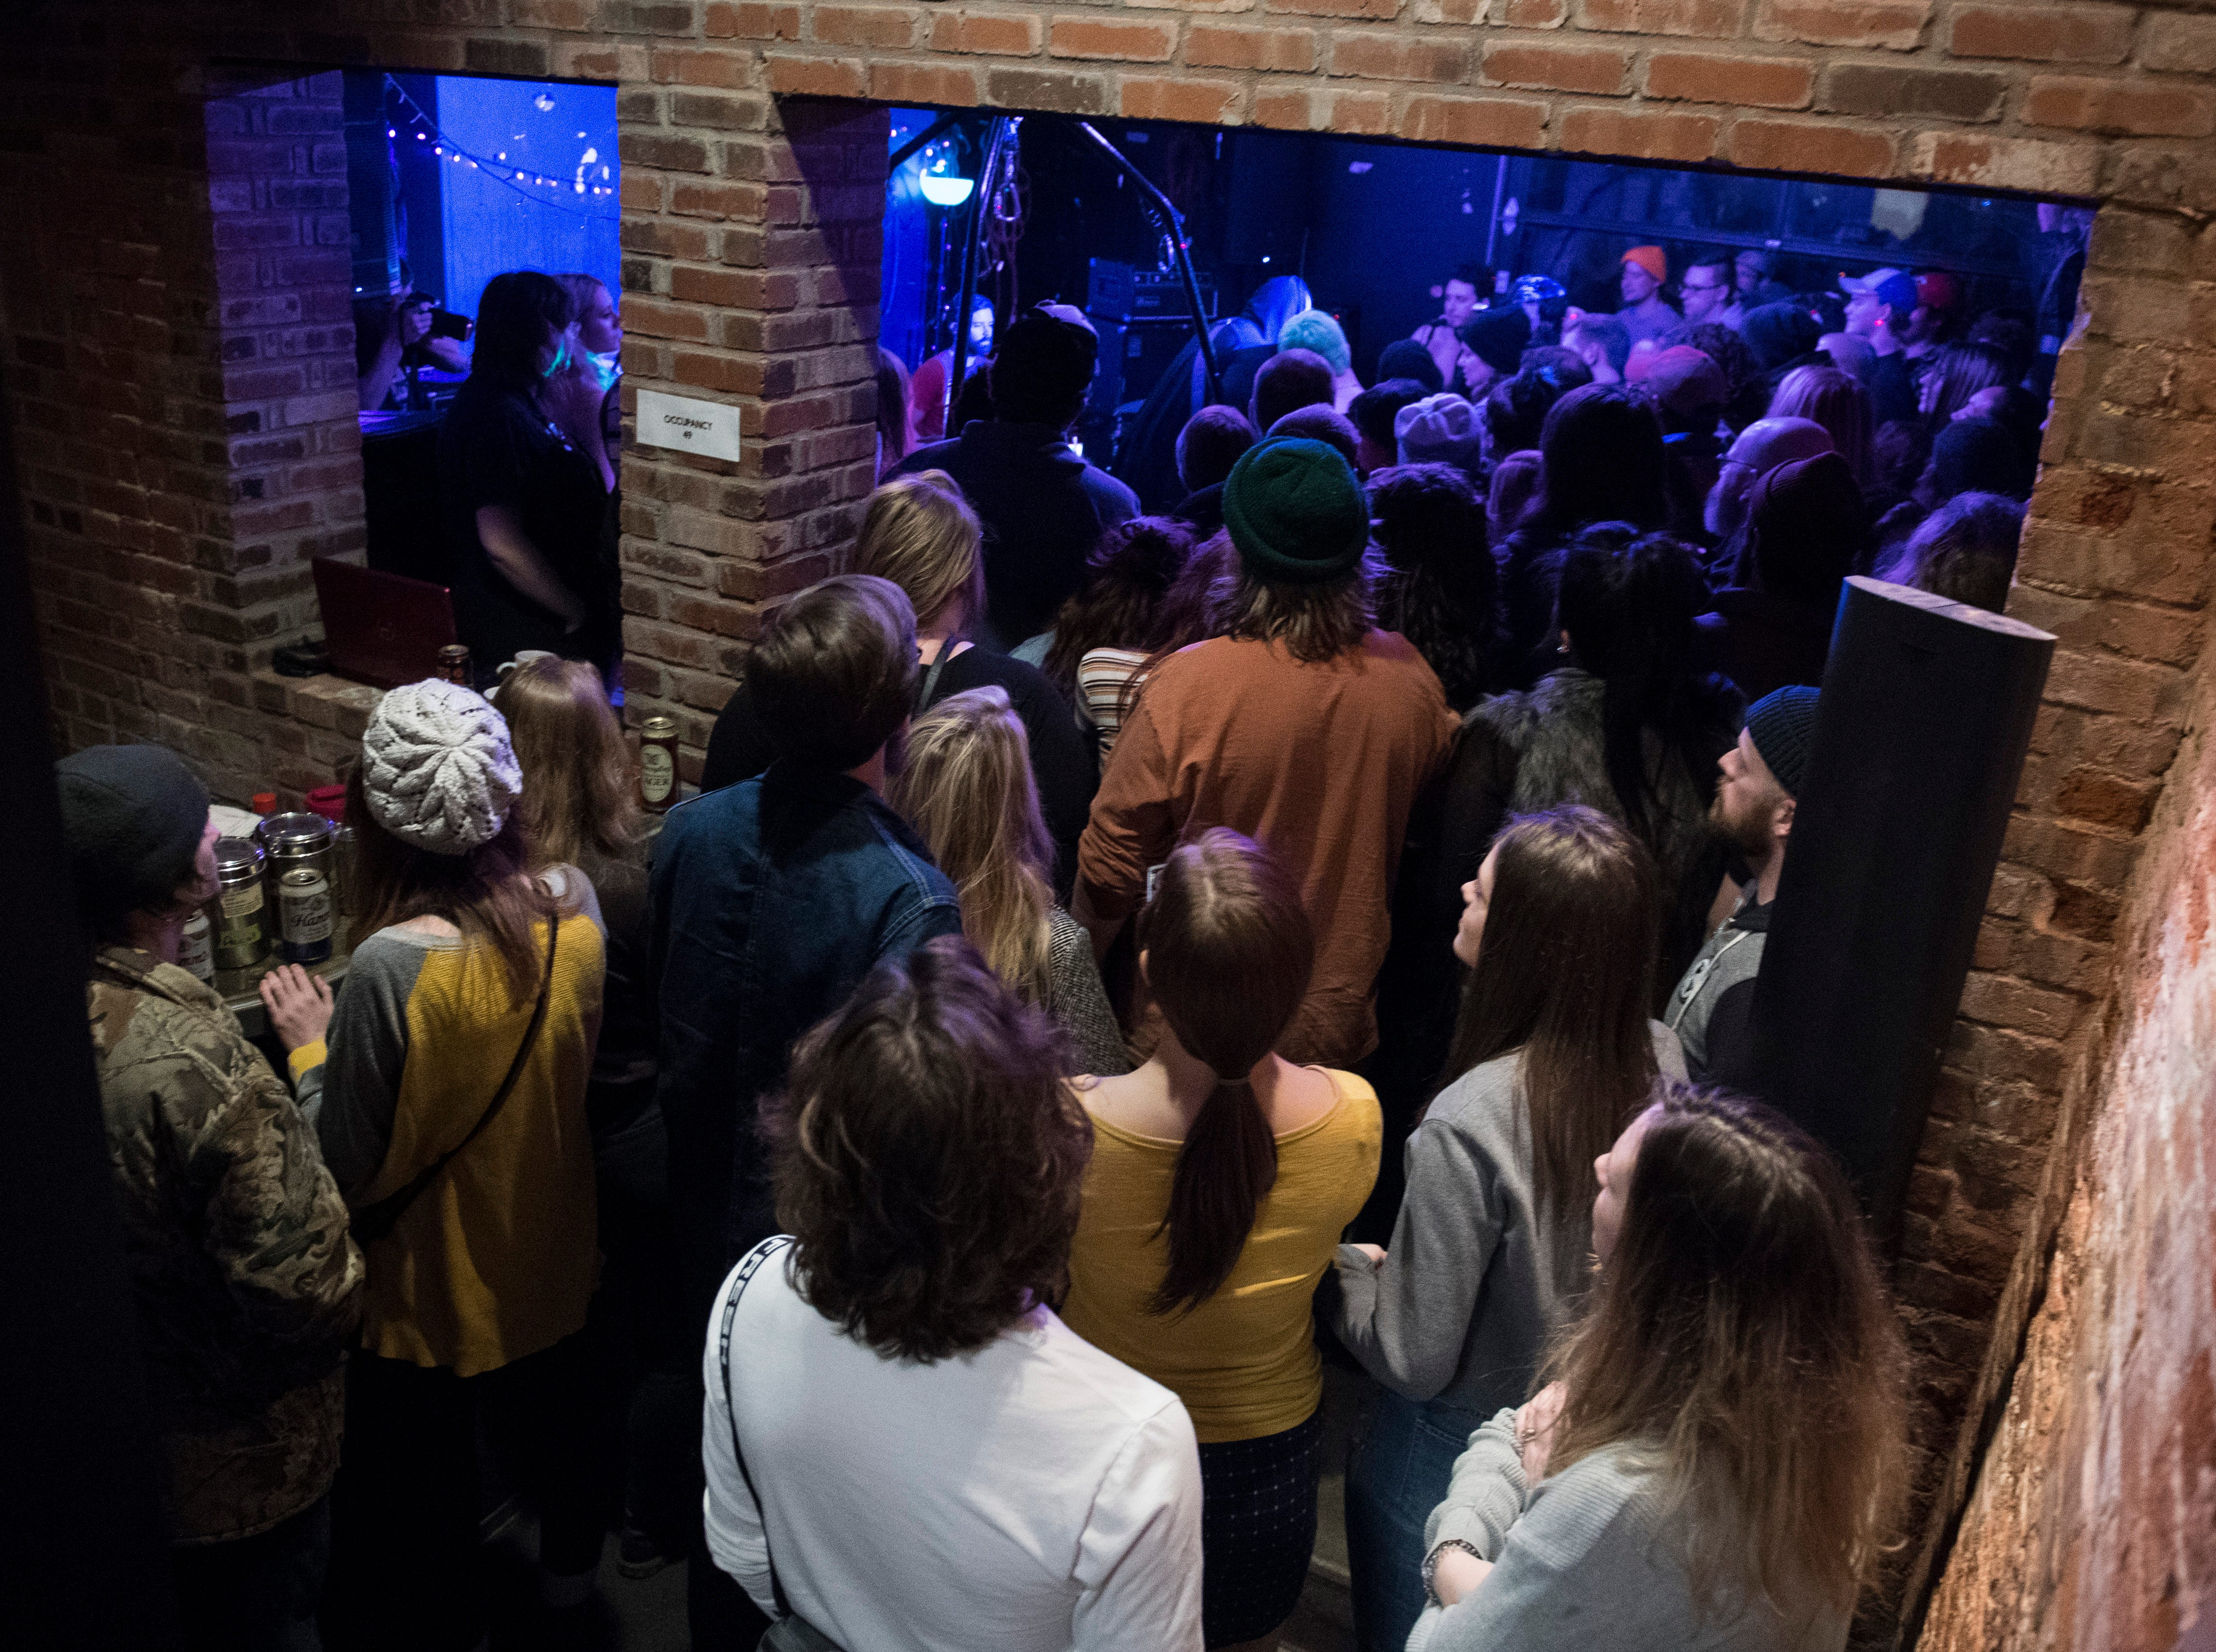 People pack the back room during the Farewell PG Weekend show Saturday, Dec. 29, 2018. PG -- a cafe, art and music venue -- opened March 15, 2013, and has served as a gathering place for the creative community in Evansville. Their final day open is Monday, Dec. 31, 2018.